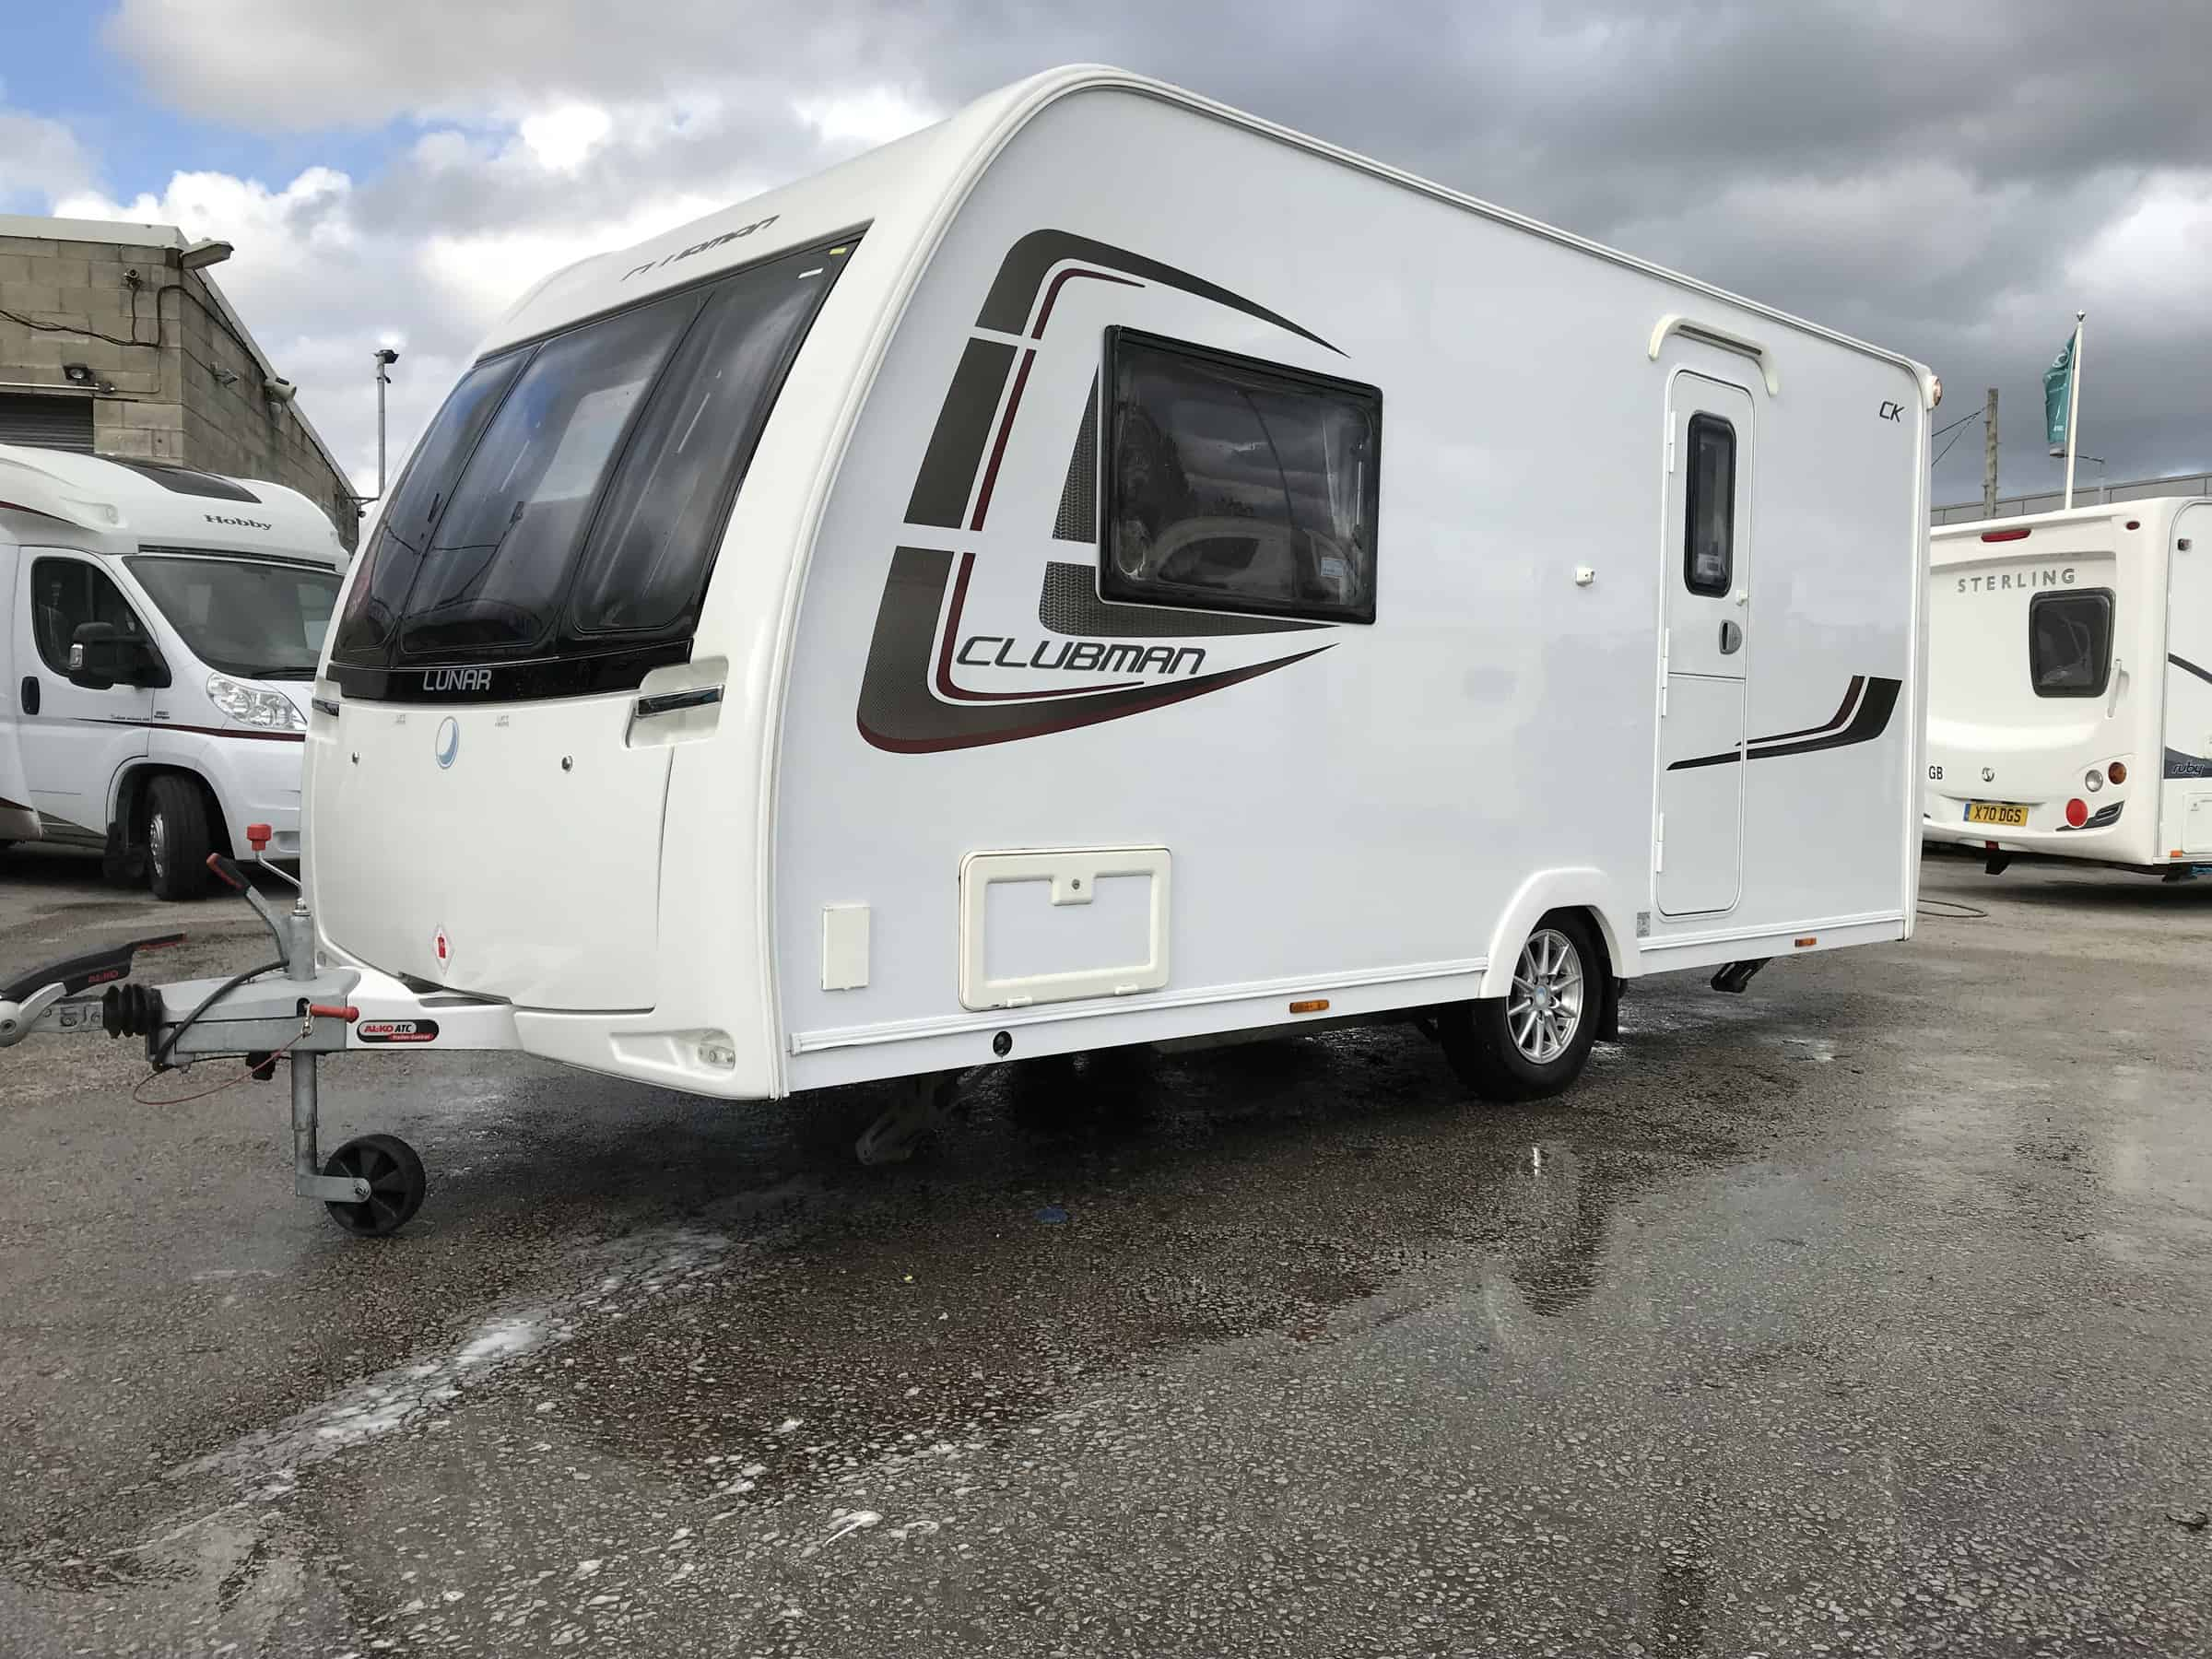 Lunar Clubman CK 2014 for sale at North Western Caravans